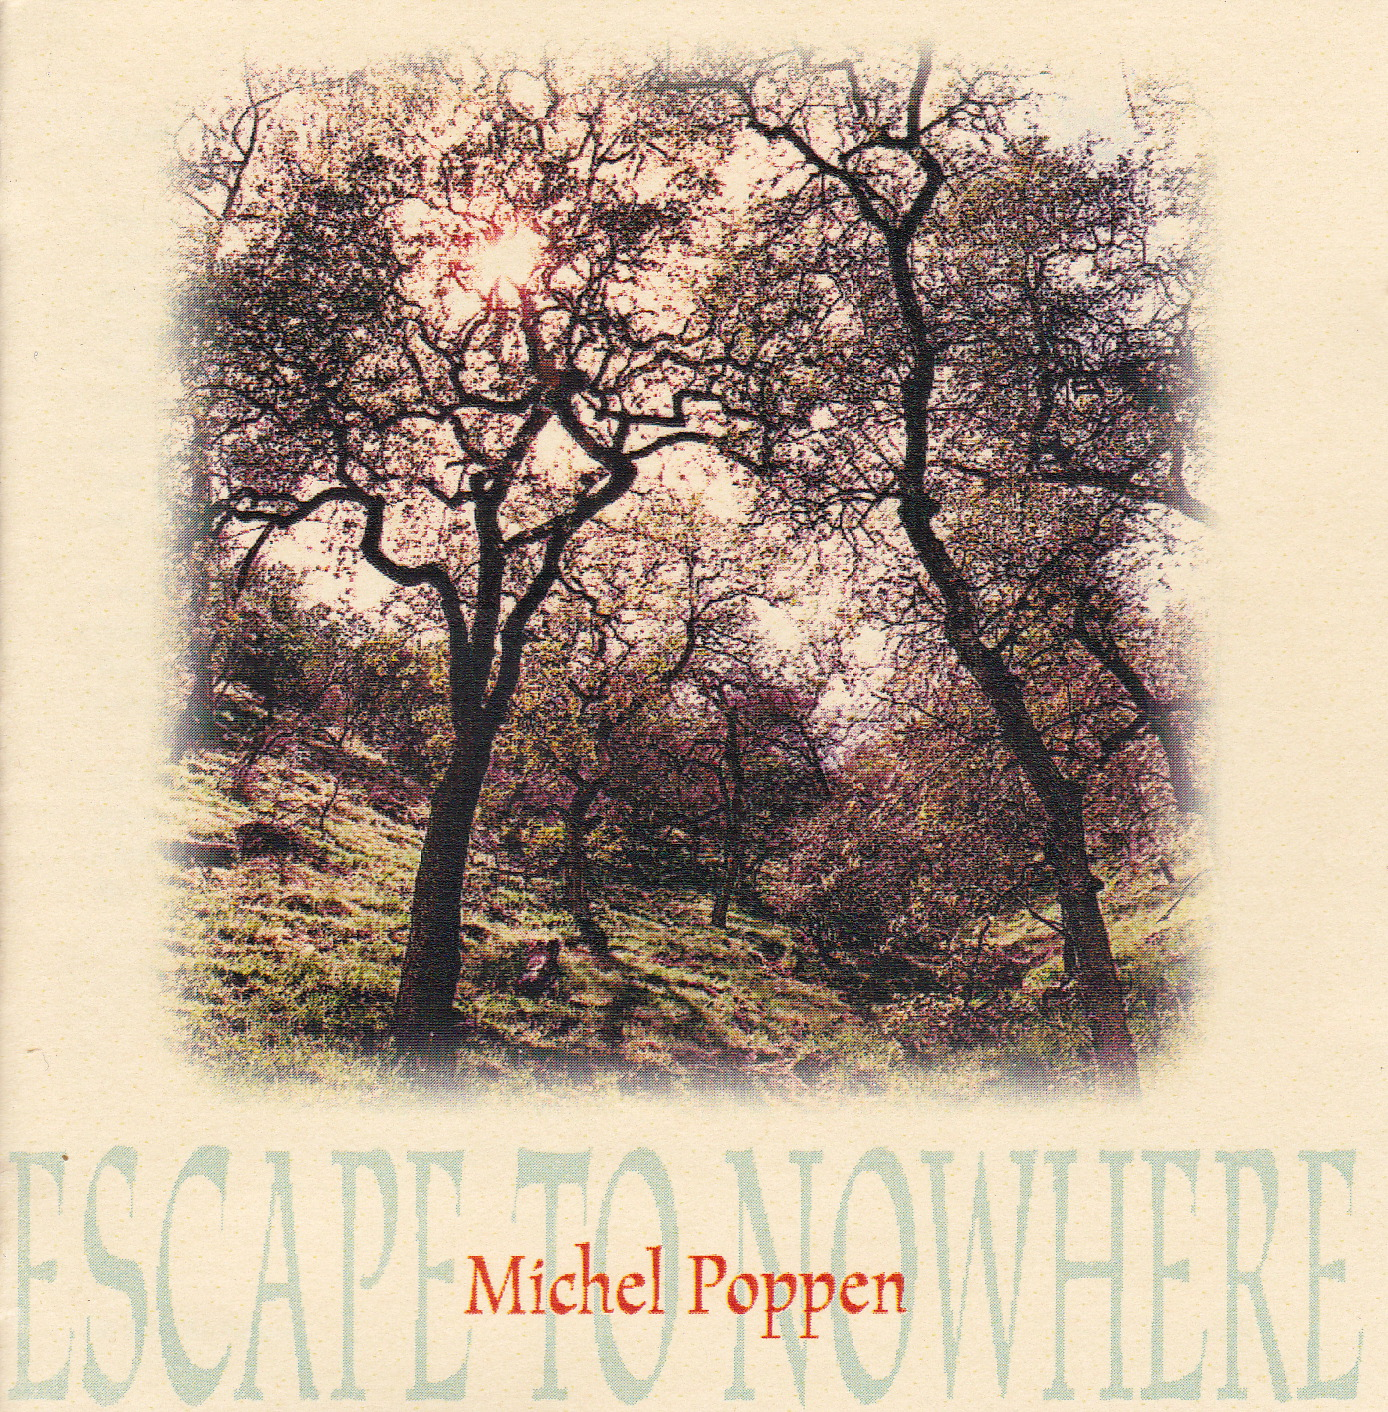 05 Escape to nowhere